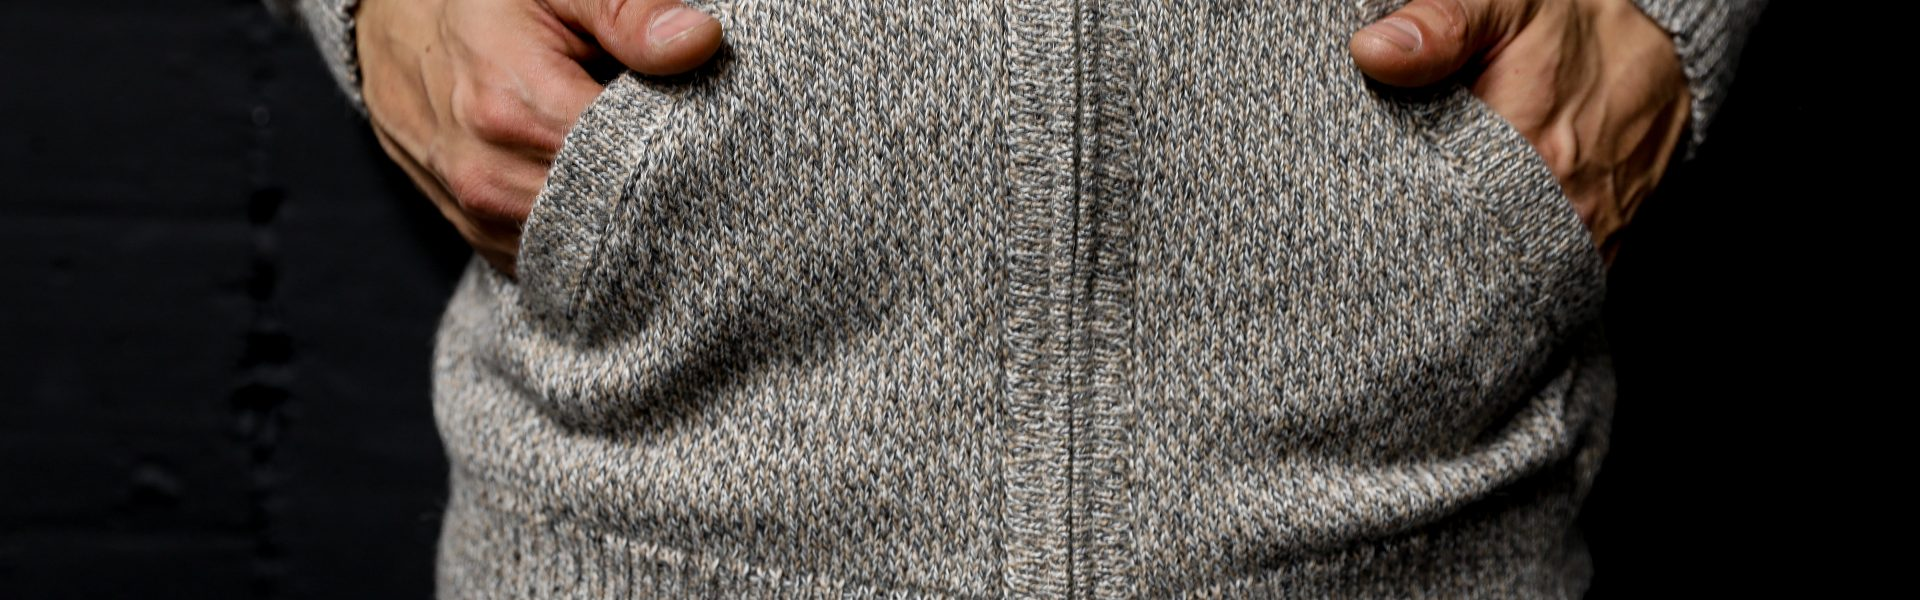 Alt+alpaca zip sweater men